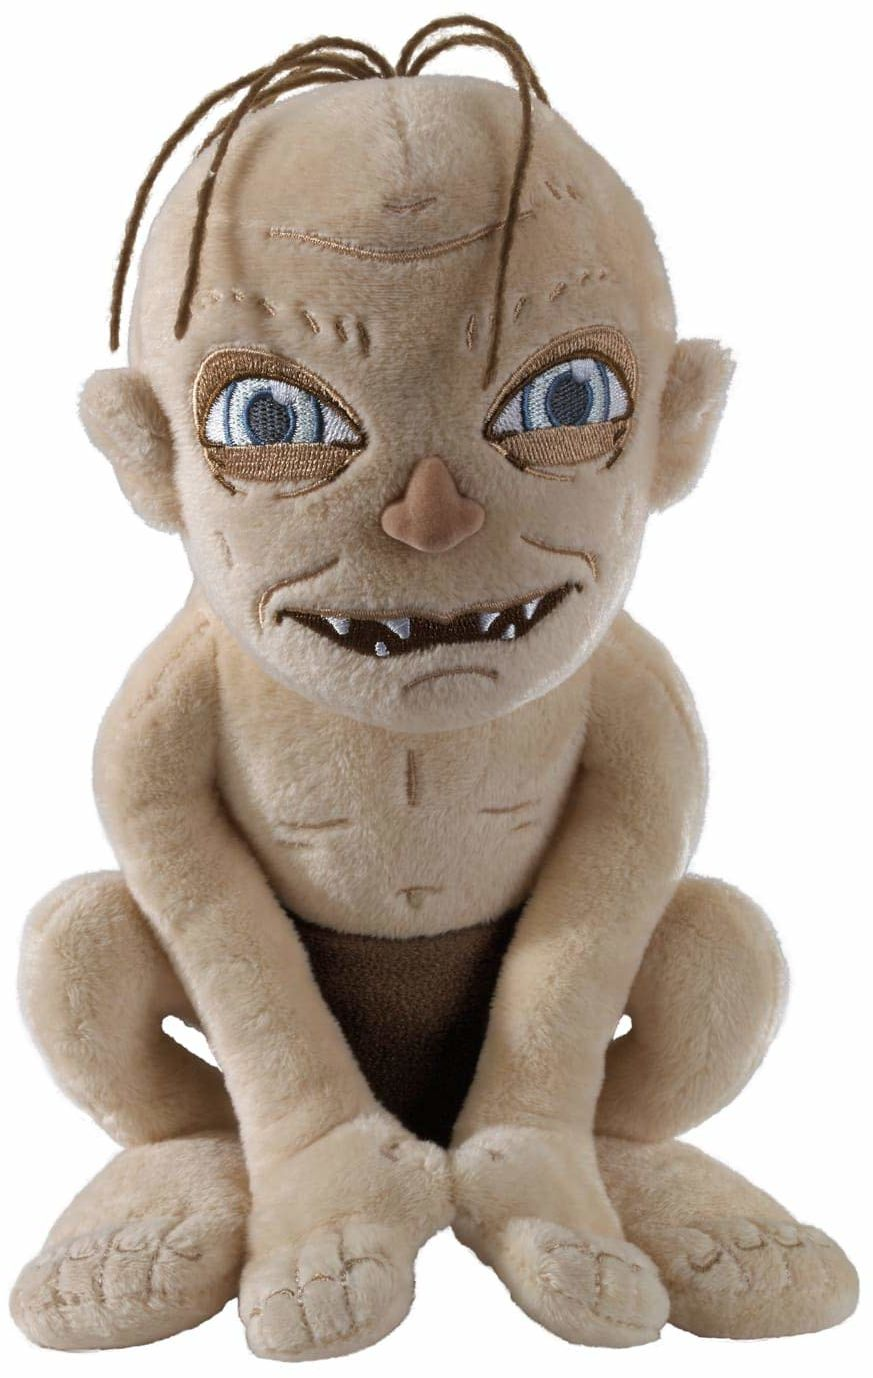 The Noble Collection Gollum Plush Officially Licensed 9in (23cm) Lord Of The Rings Toy Dolls LOTR Plush - For Kids & Adults